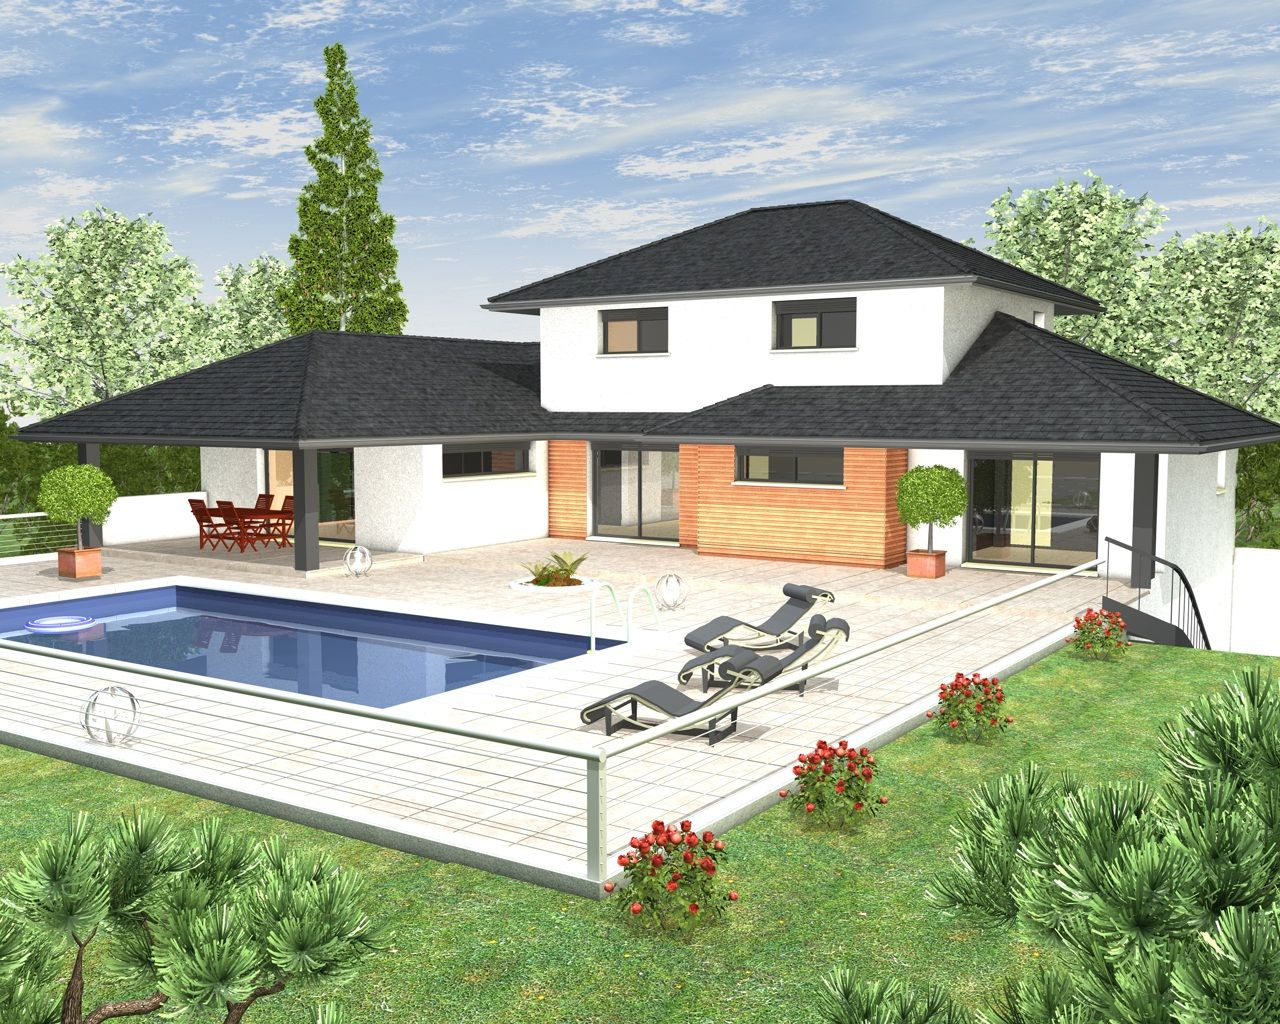 Mod les et plans de maisons mod le tage inspiration for Plan de maison contemporaine en l